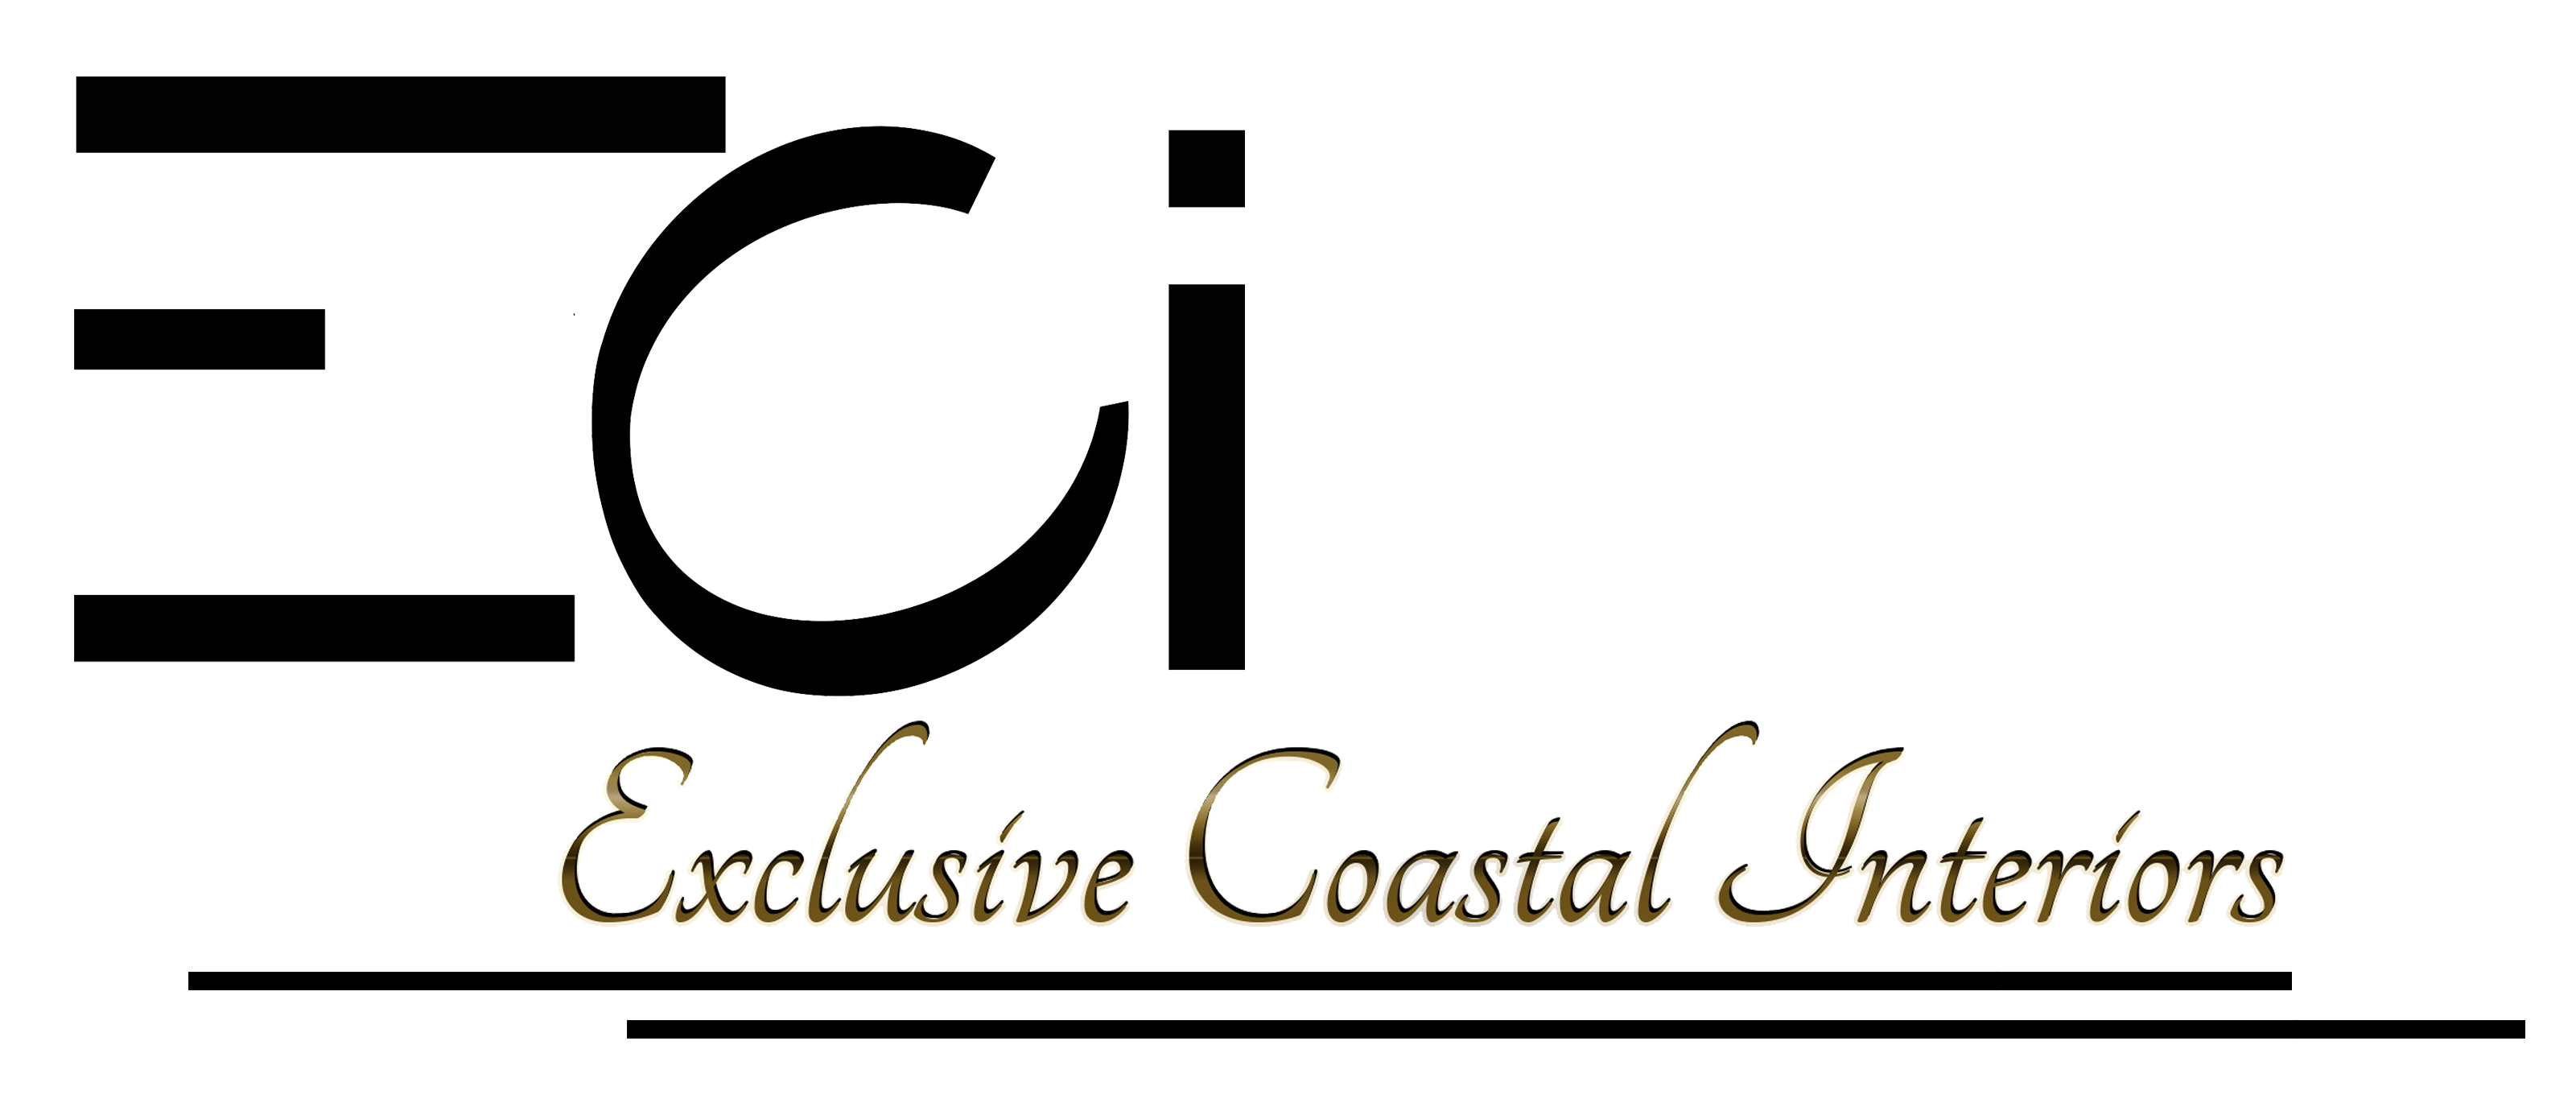 Exclusive Coastal Interiors